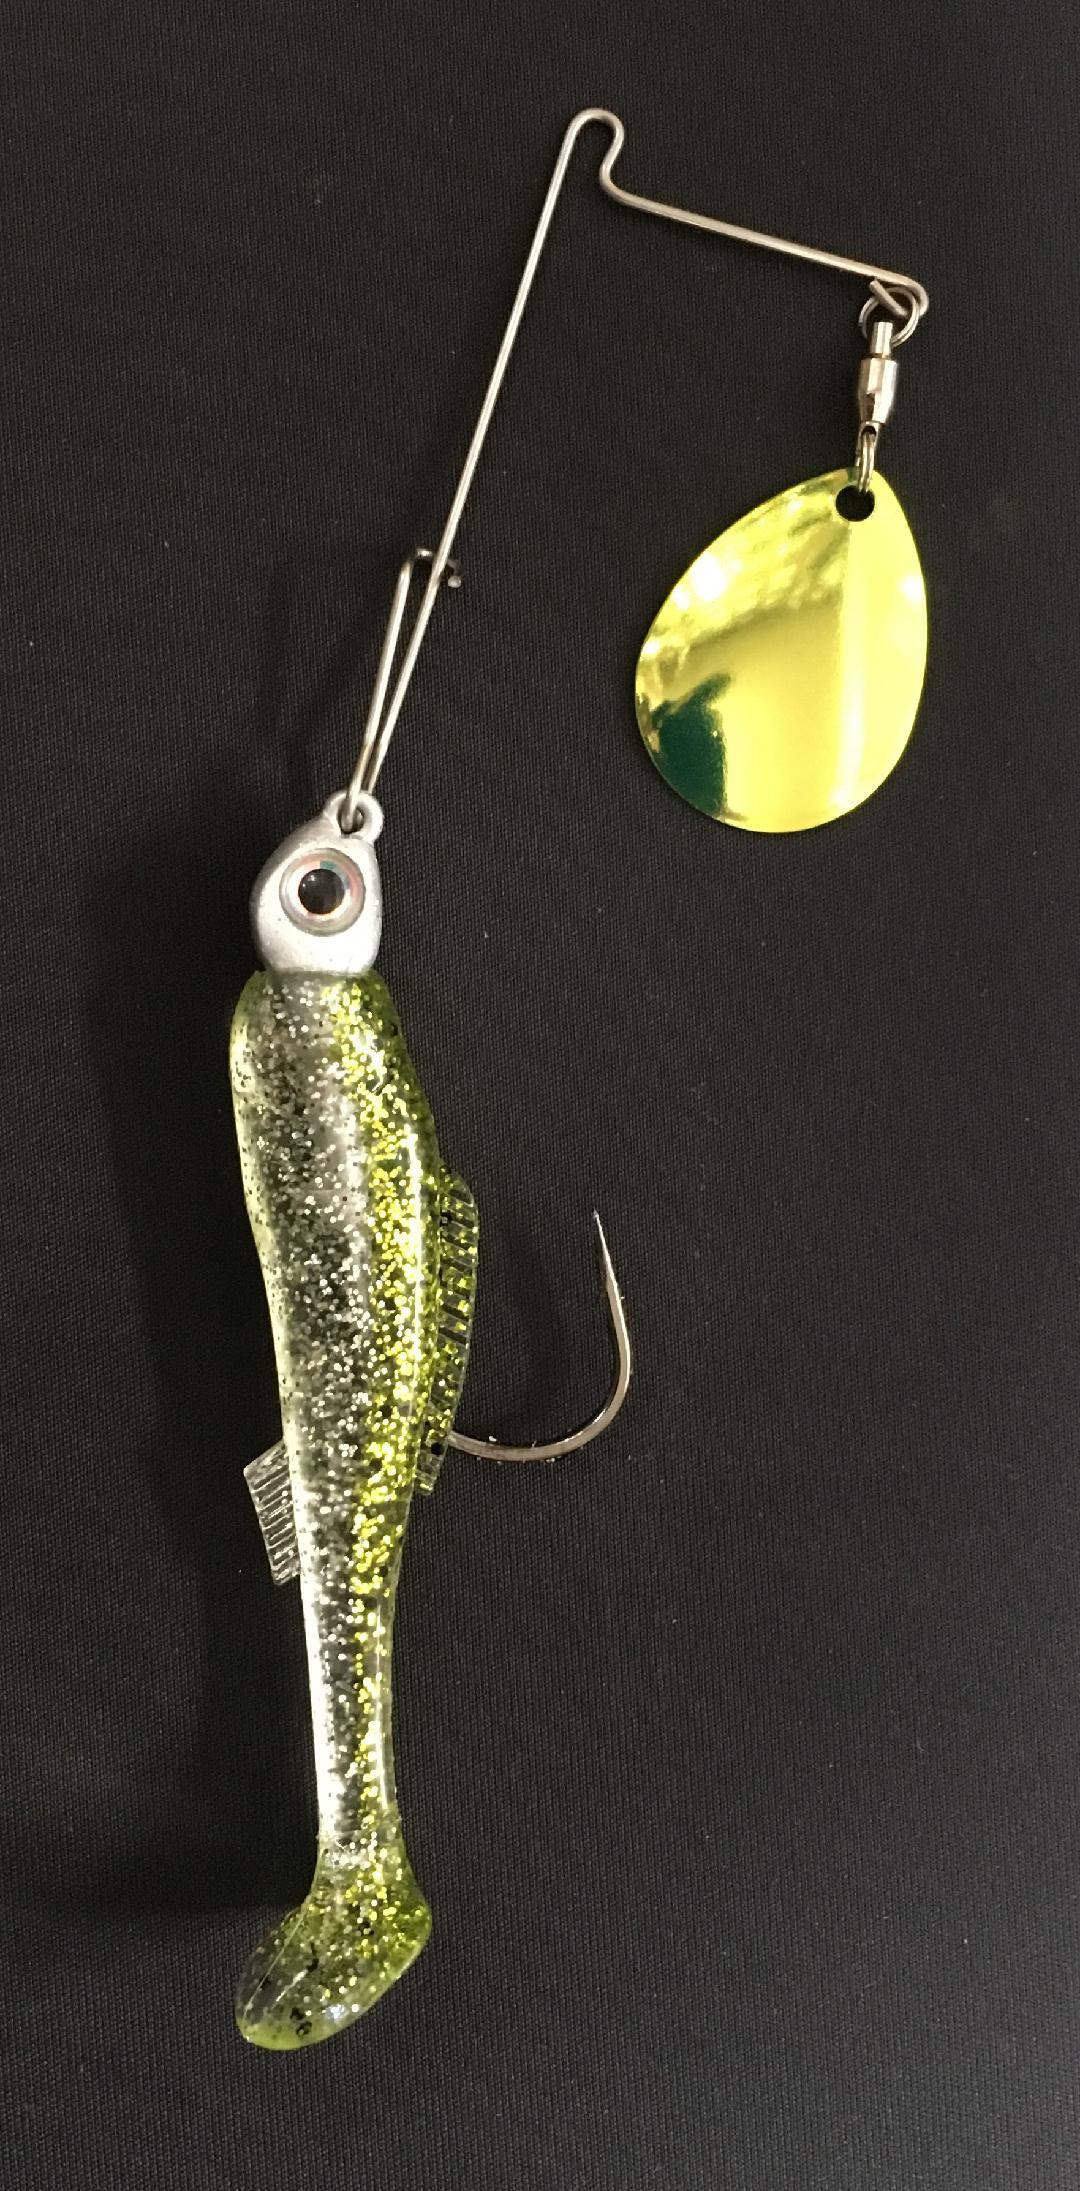 1/4 oz Chartreuse Ice - Kajun Boss Outdoors